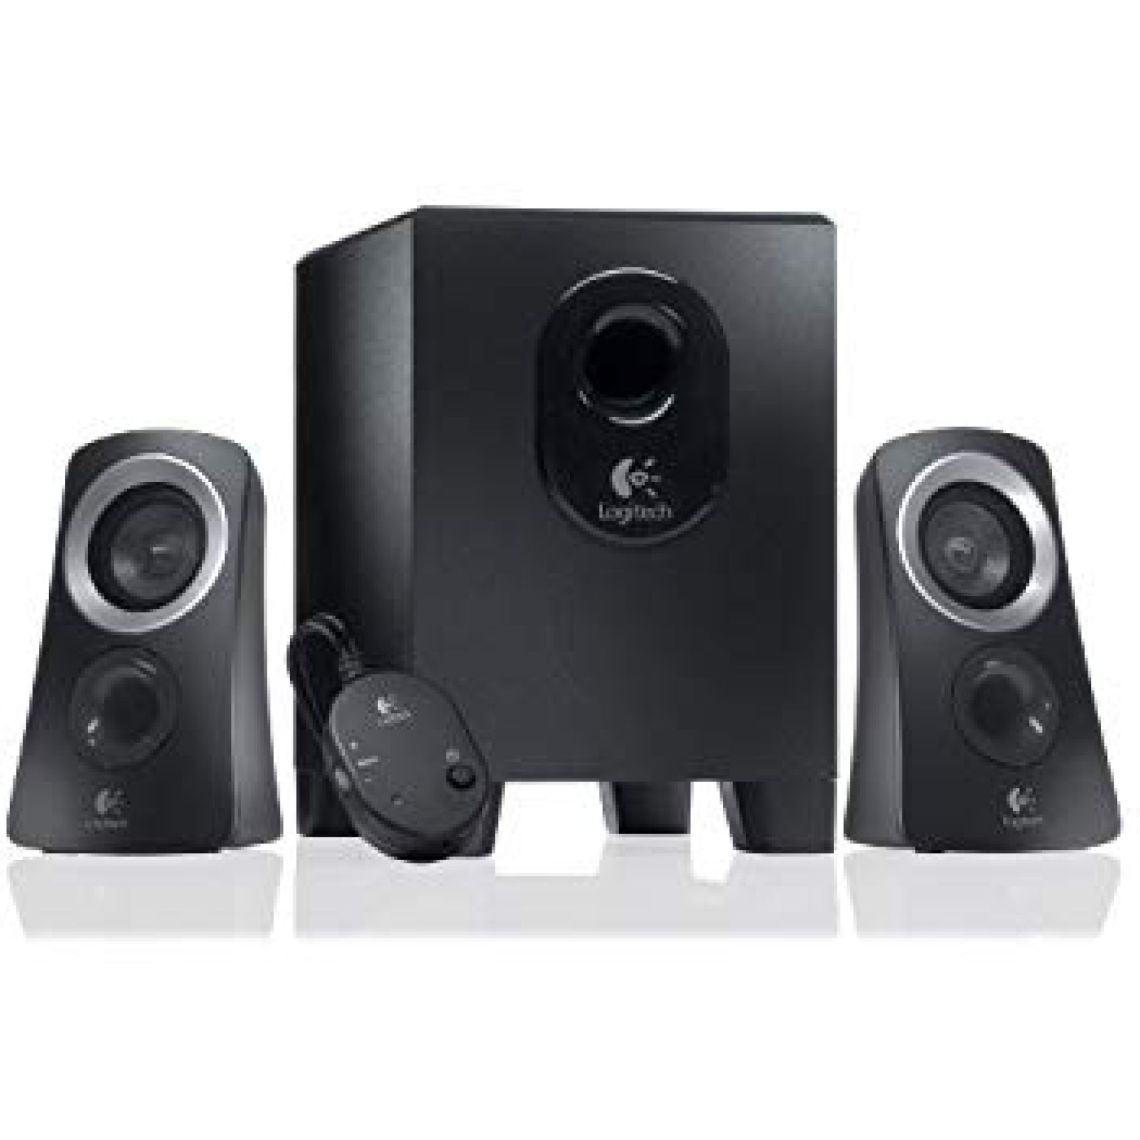 Amazon.com: Logitech Z313 Speaker System: Electronics